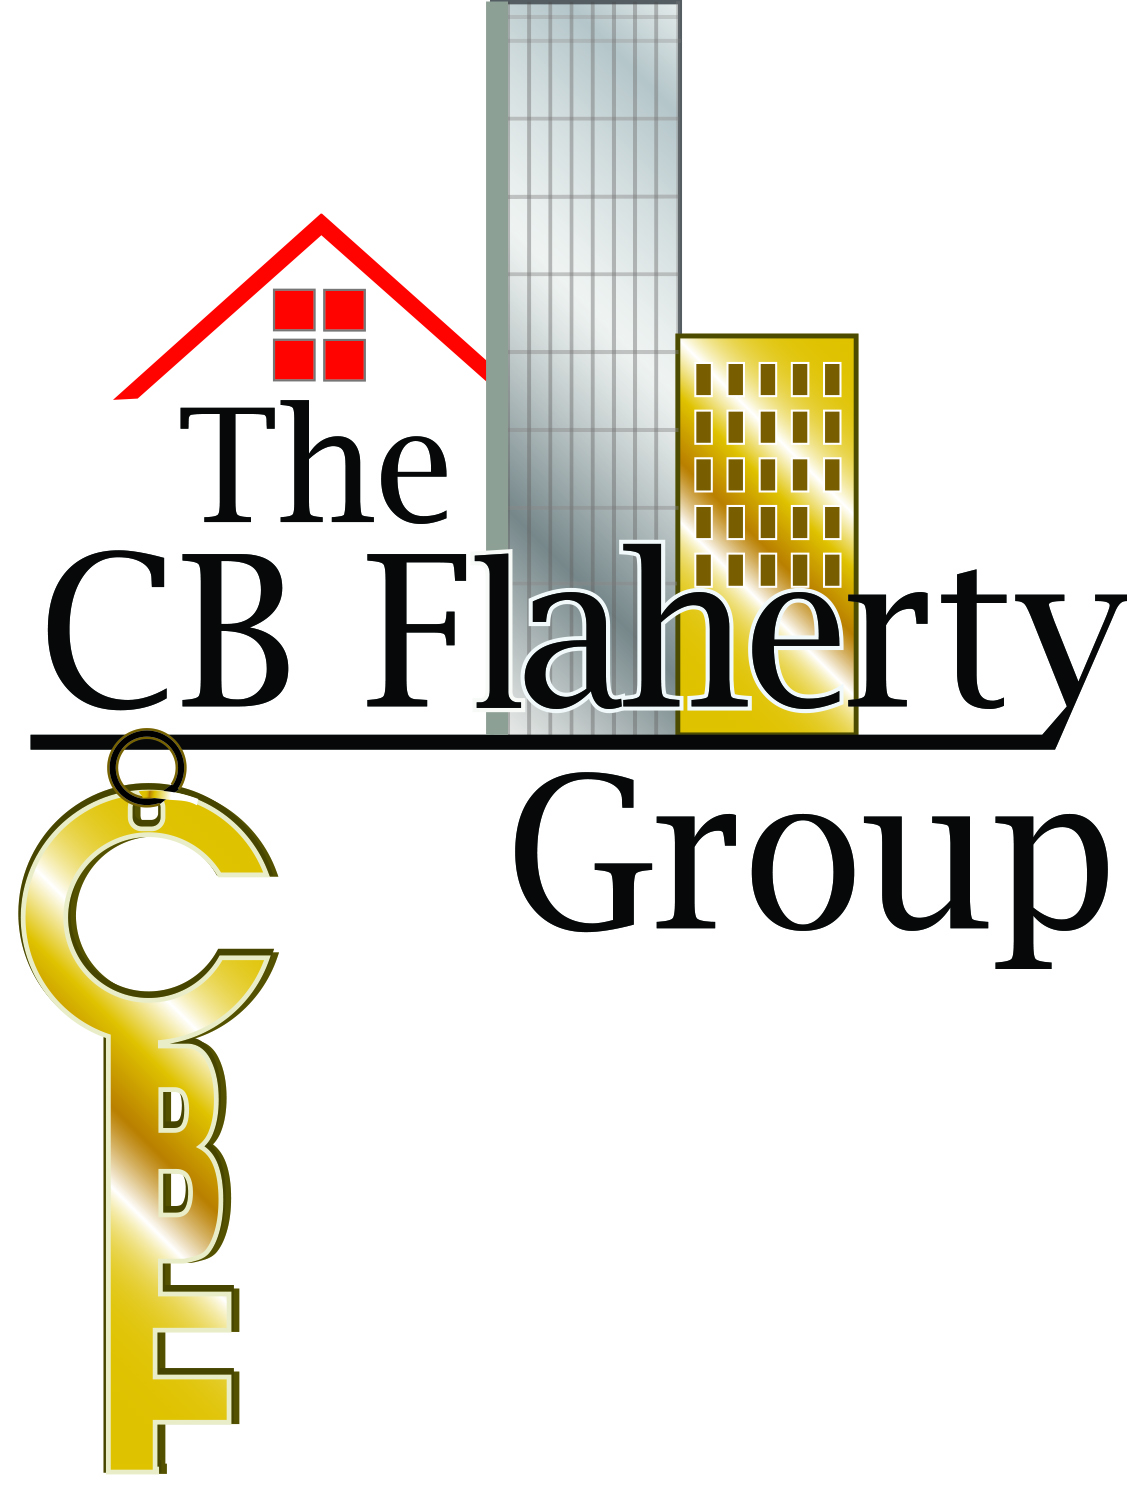 C.B. Flaherty Realty Group logo